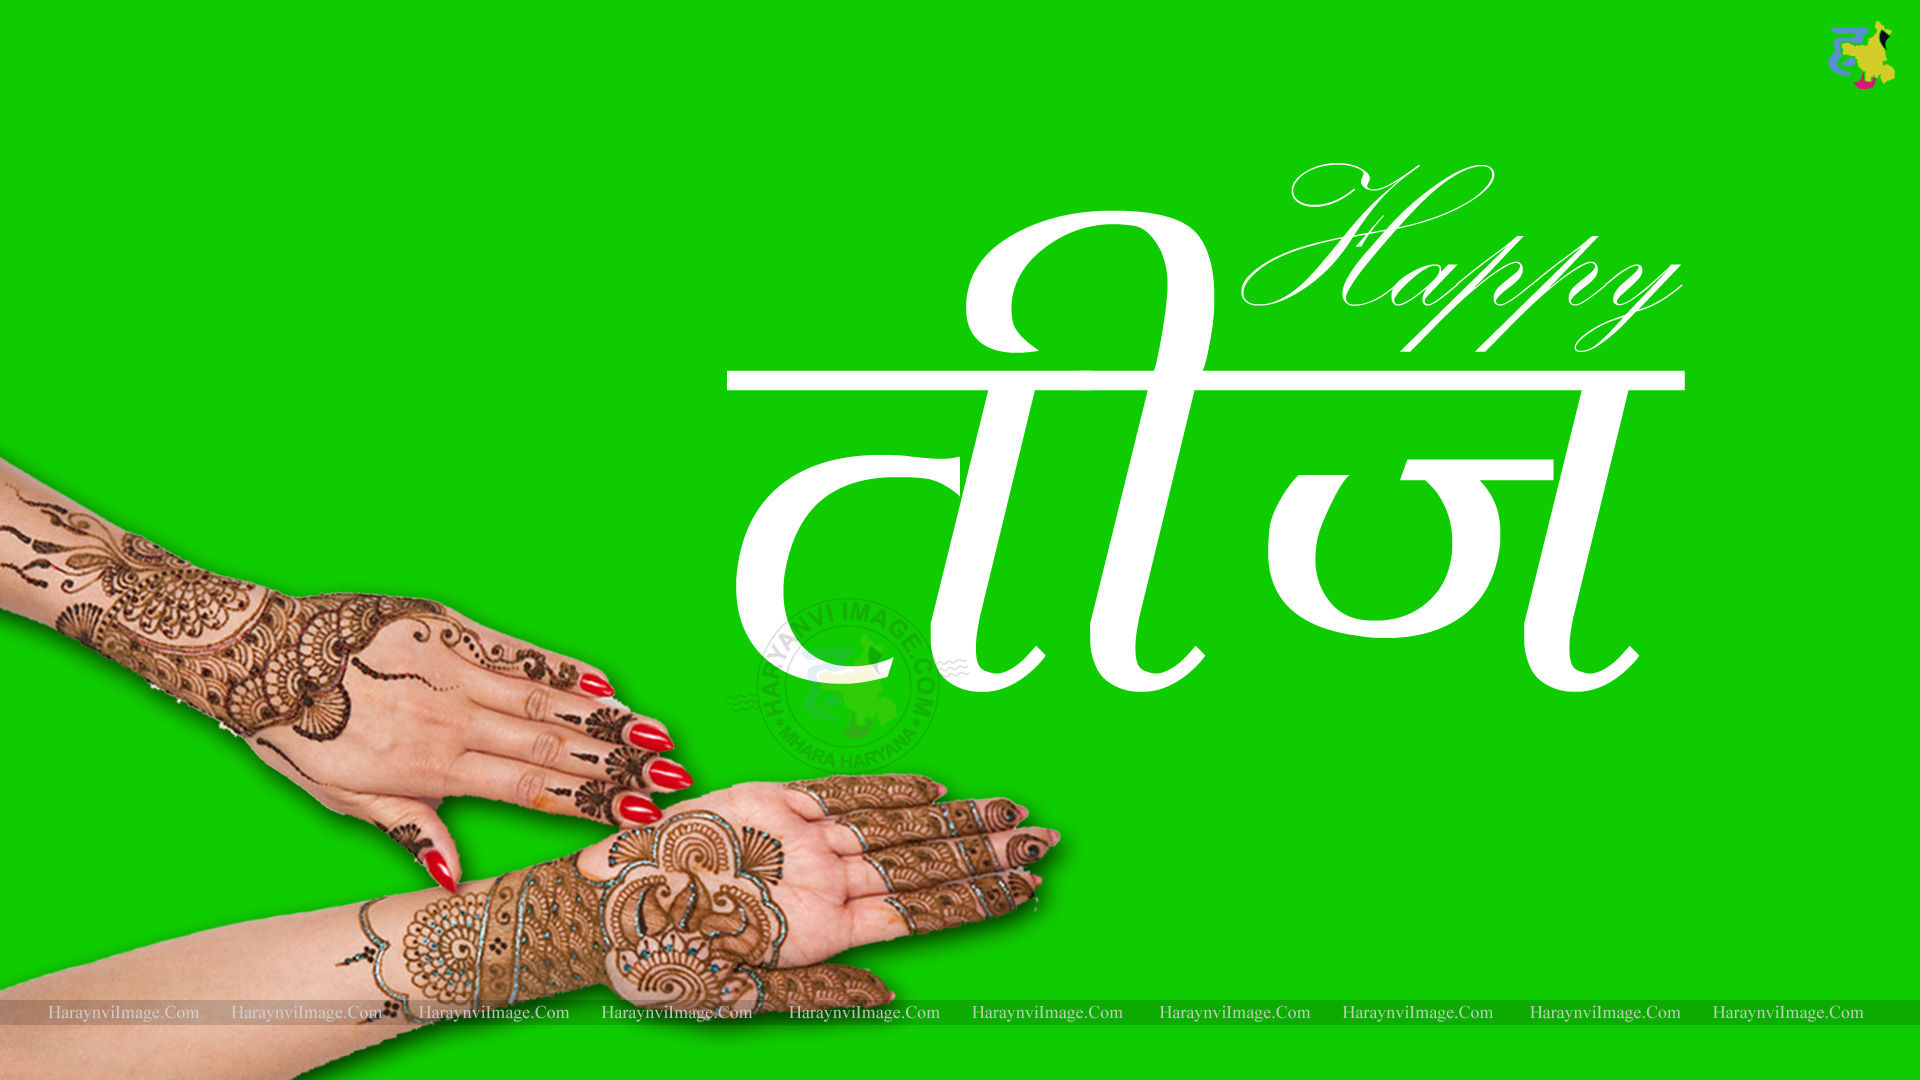 Happy Teej Hindi Mehndi Hands HD Wallpaper